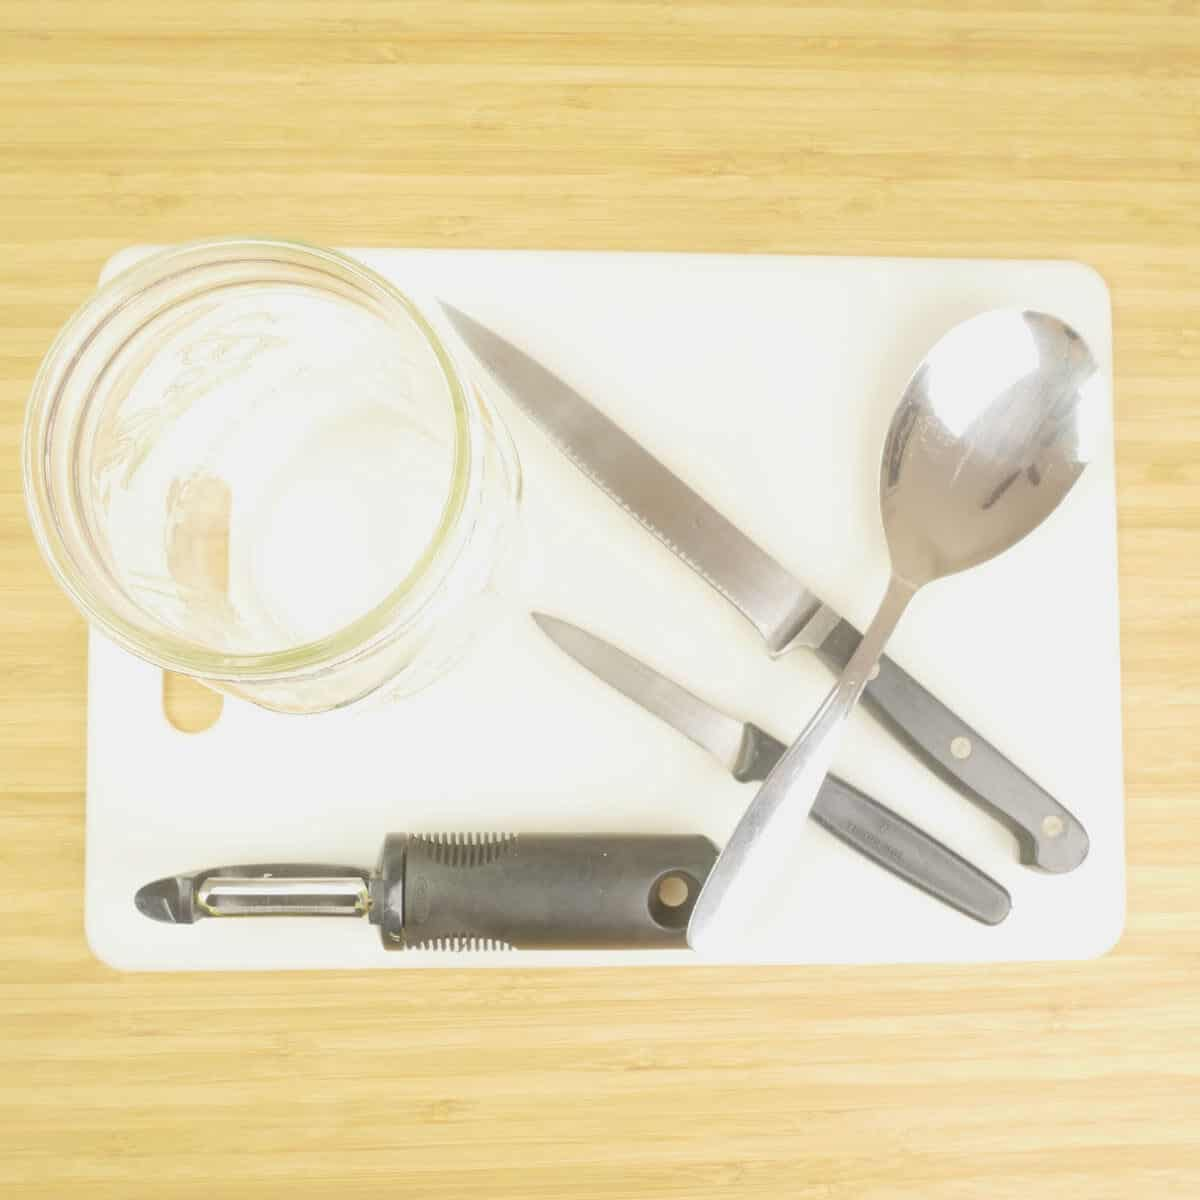 The equipment for making mango liqueur sterilized and ready to use.